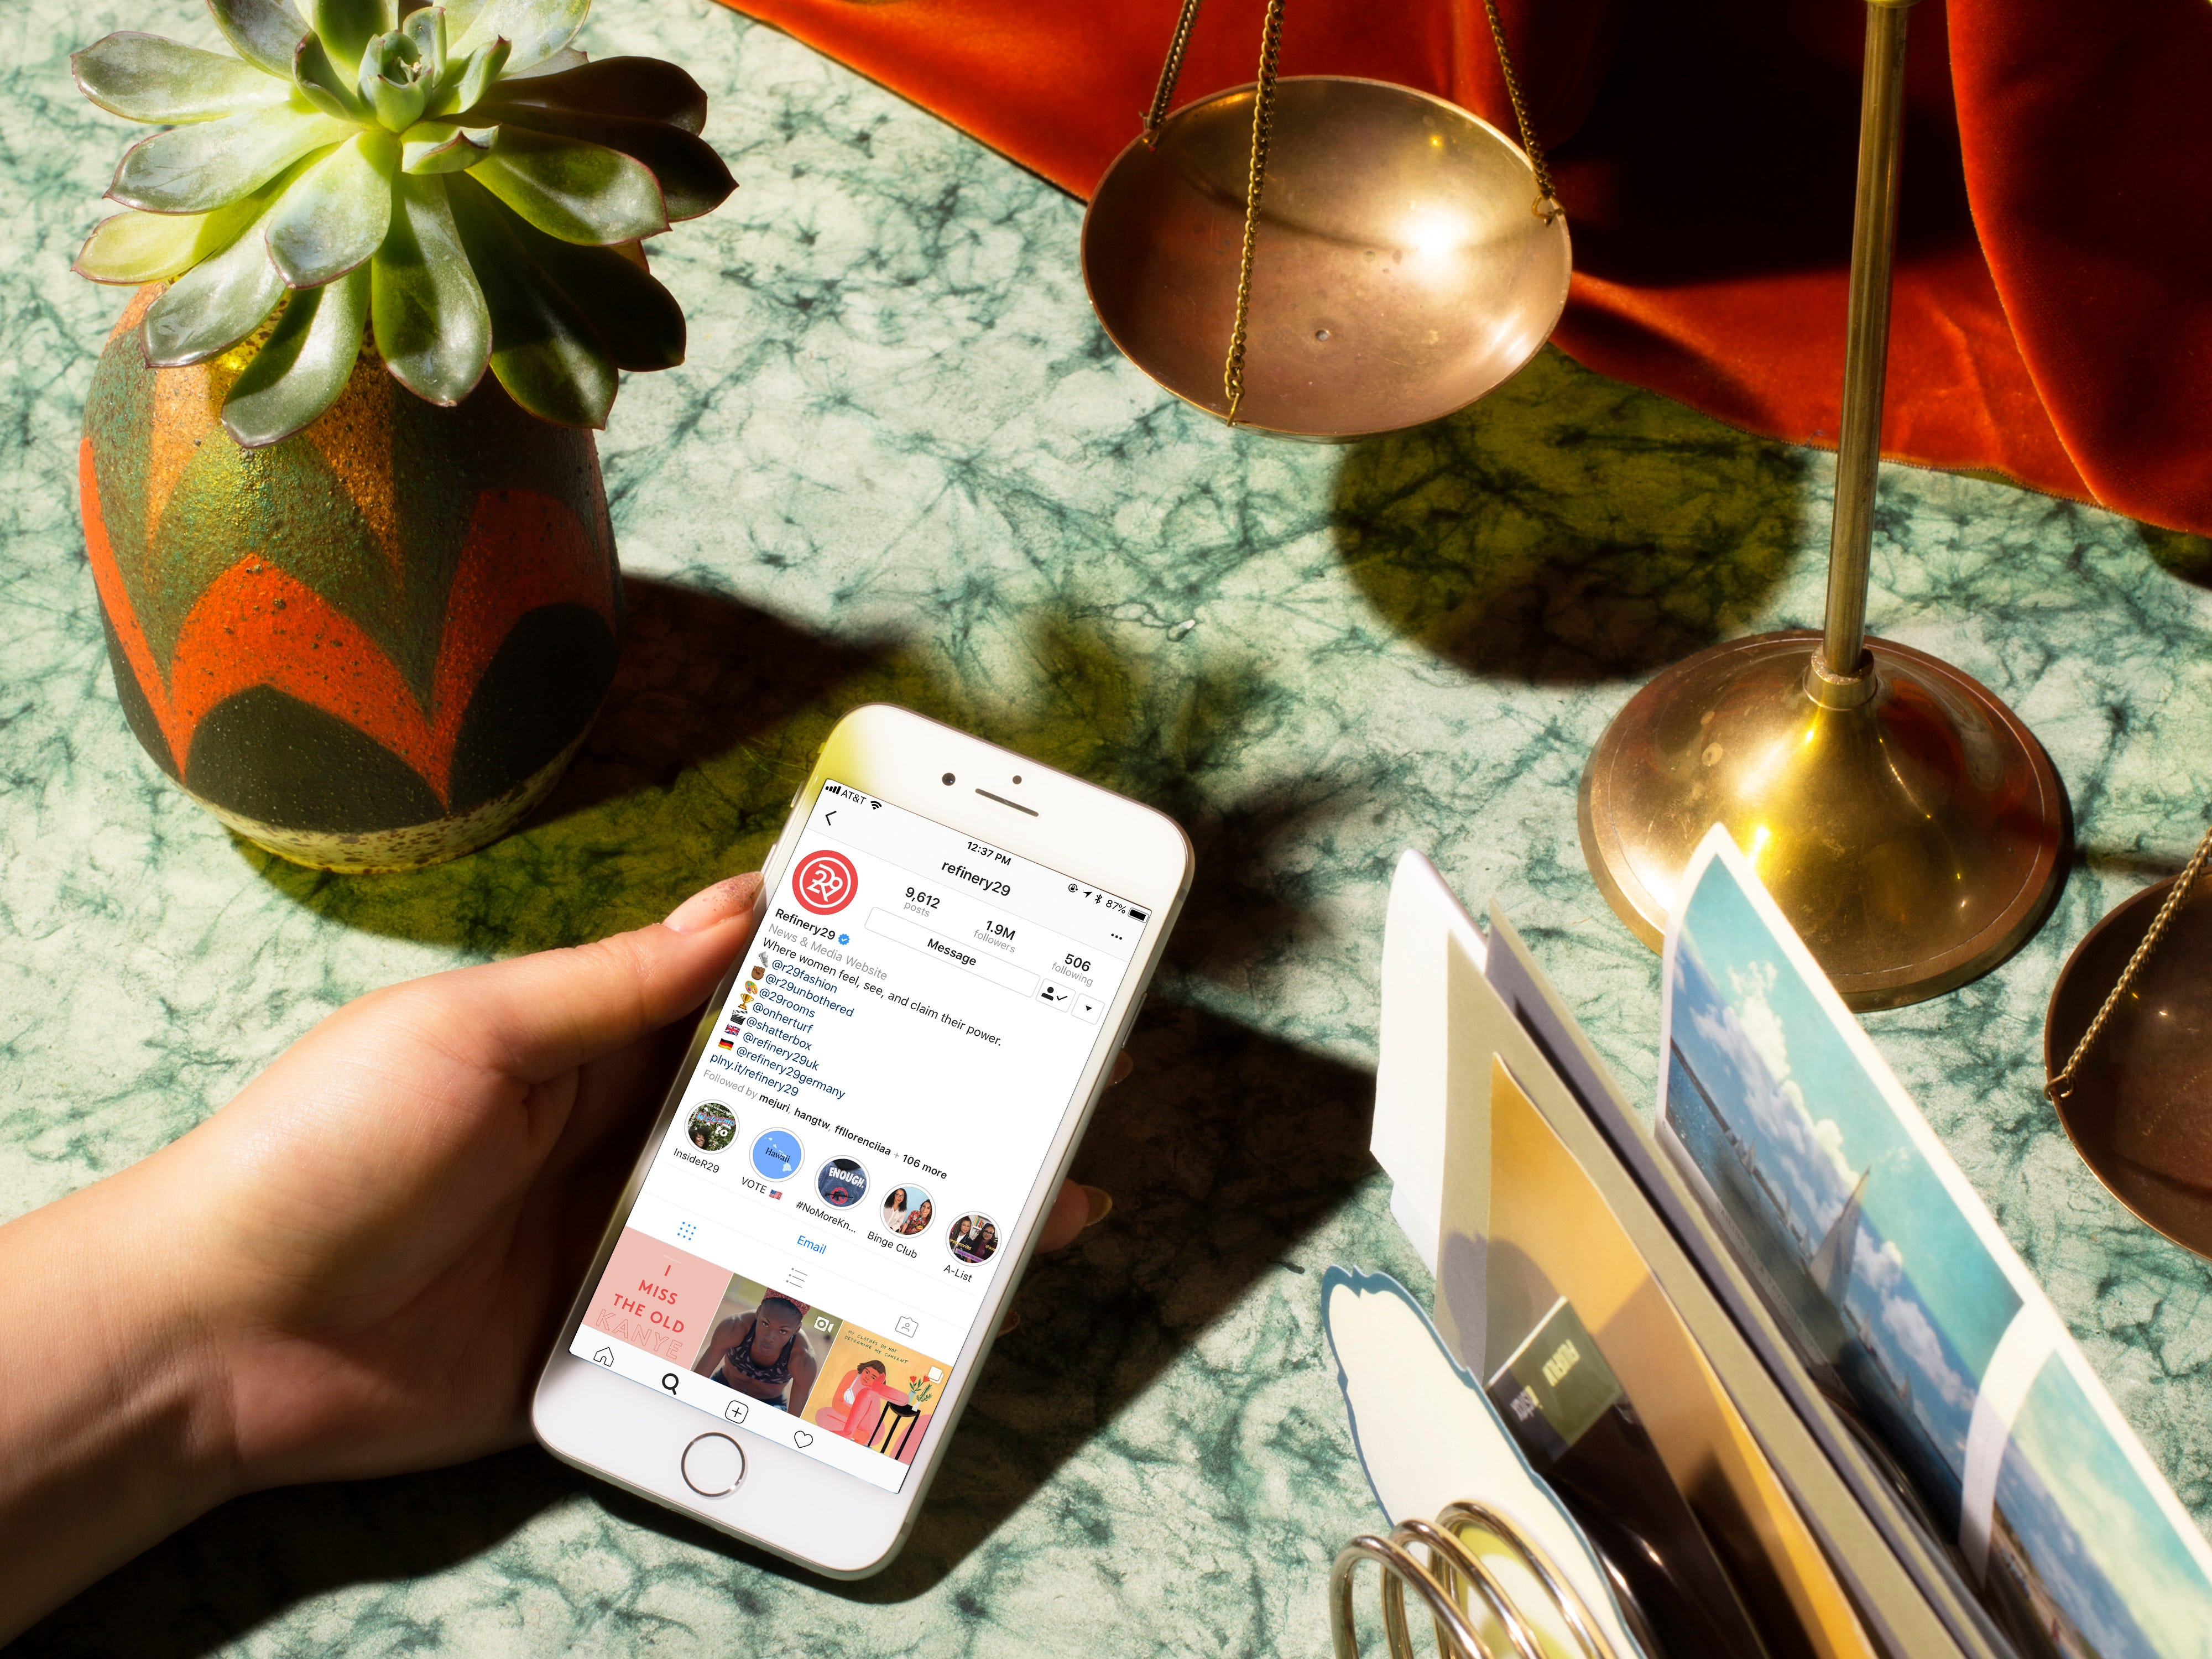 How To Find Out Who Unfollowed You On Instagram Apps